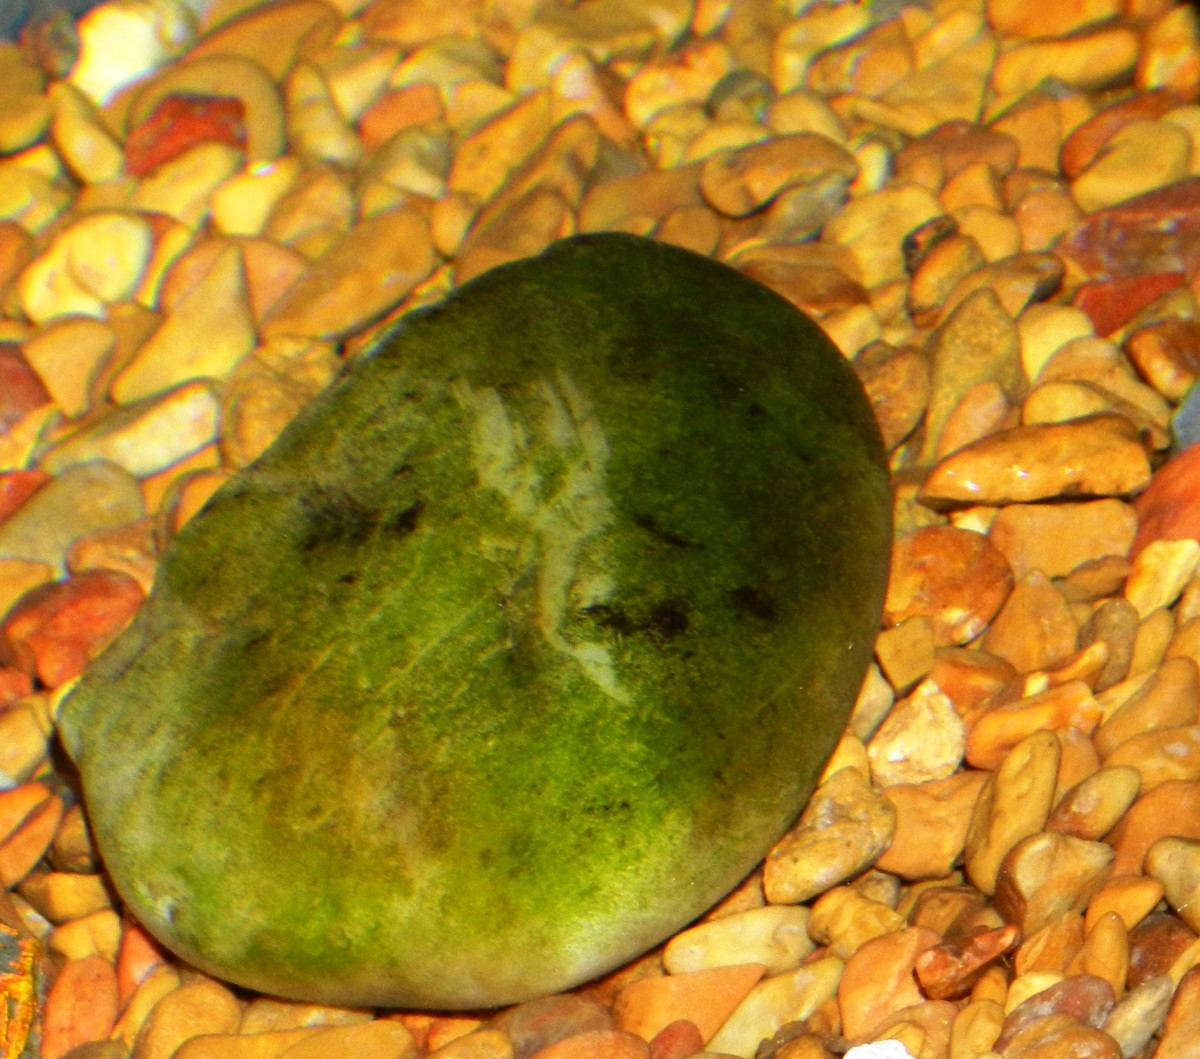 Algae growth is typical in aquariums, but a sudden algae bloom can turn your water a murky green.